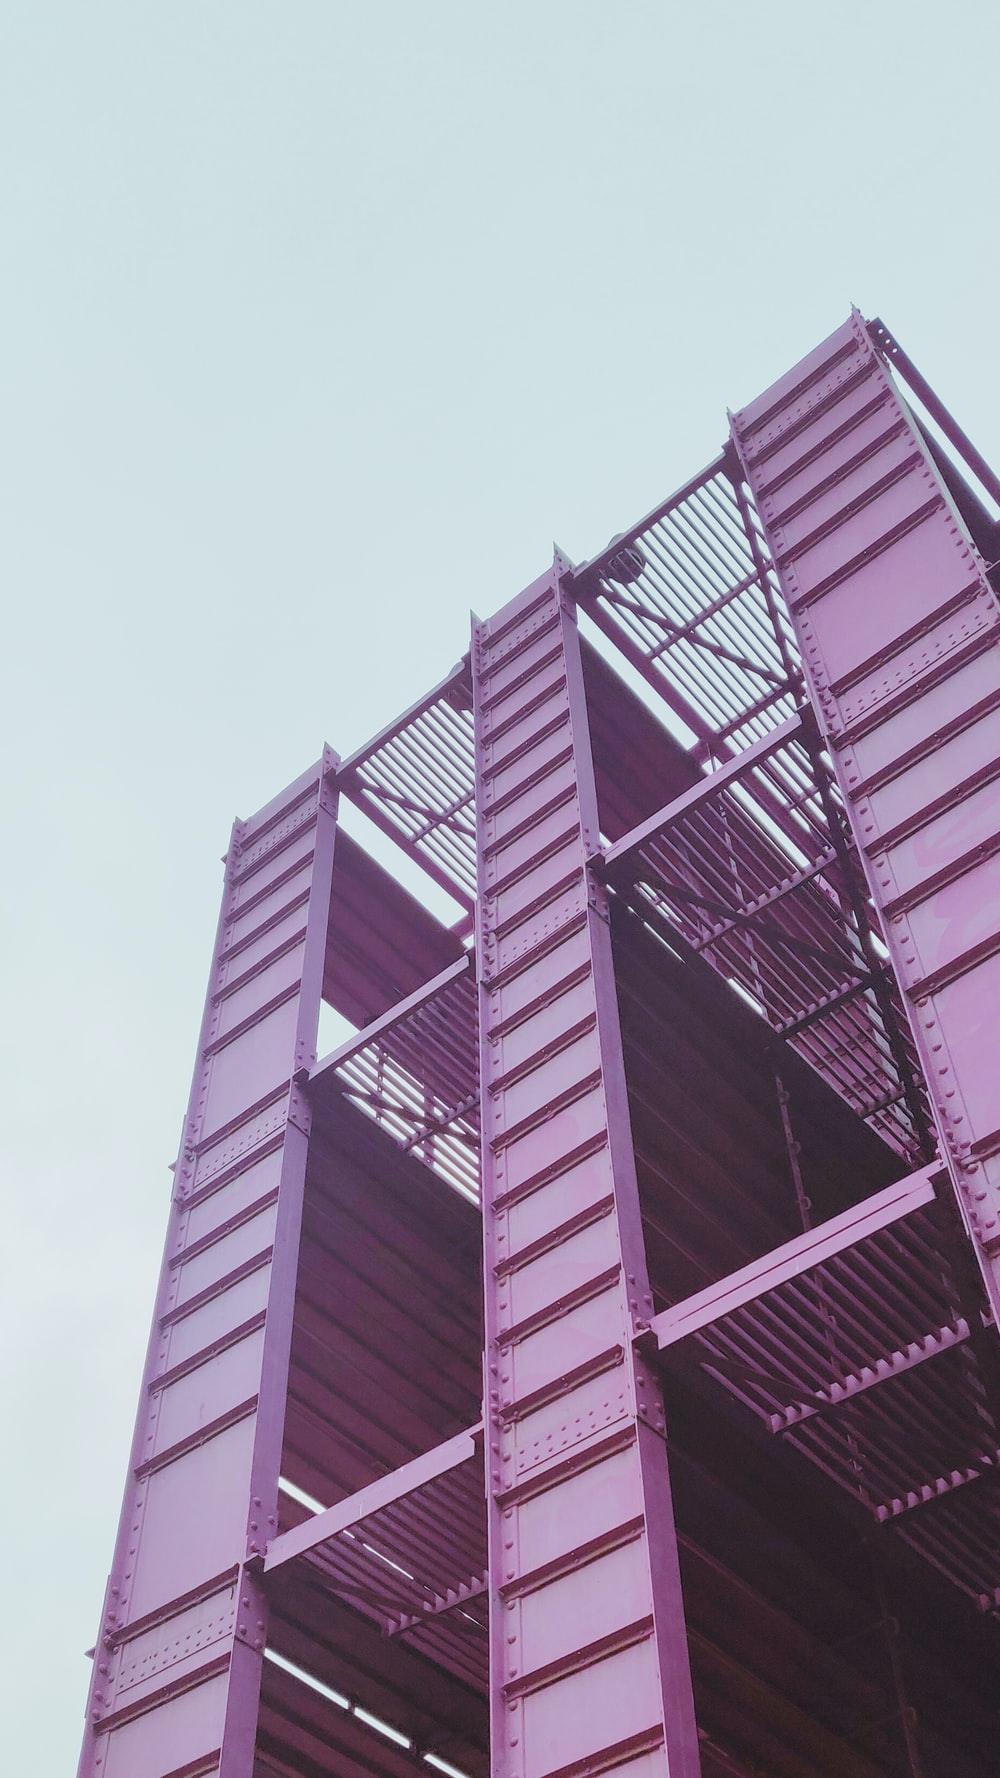 pink metal high rise building under white sky